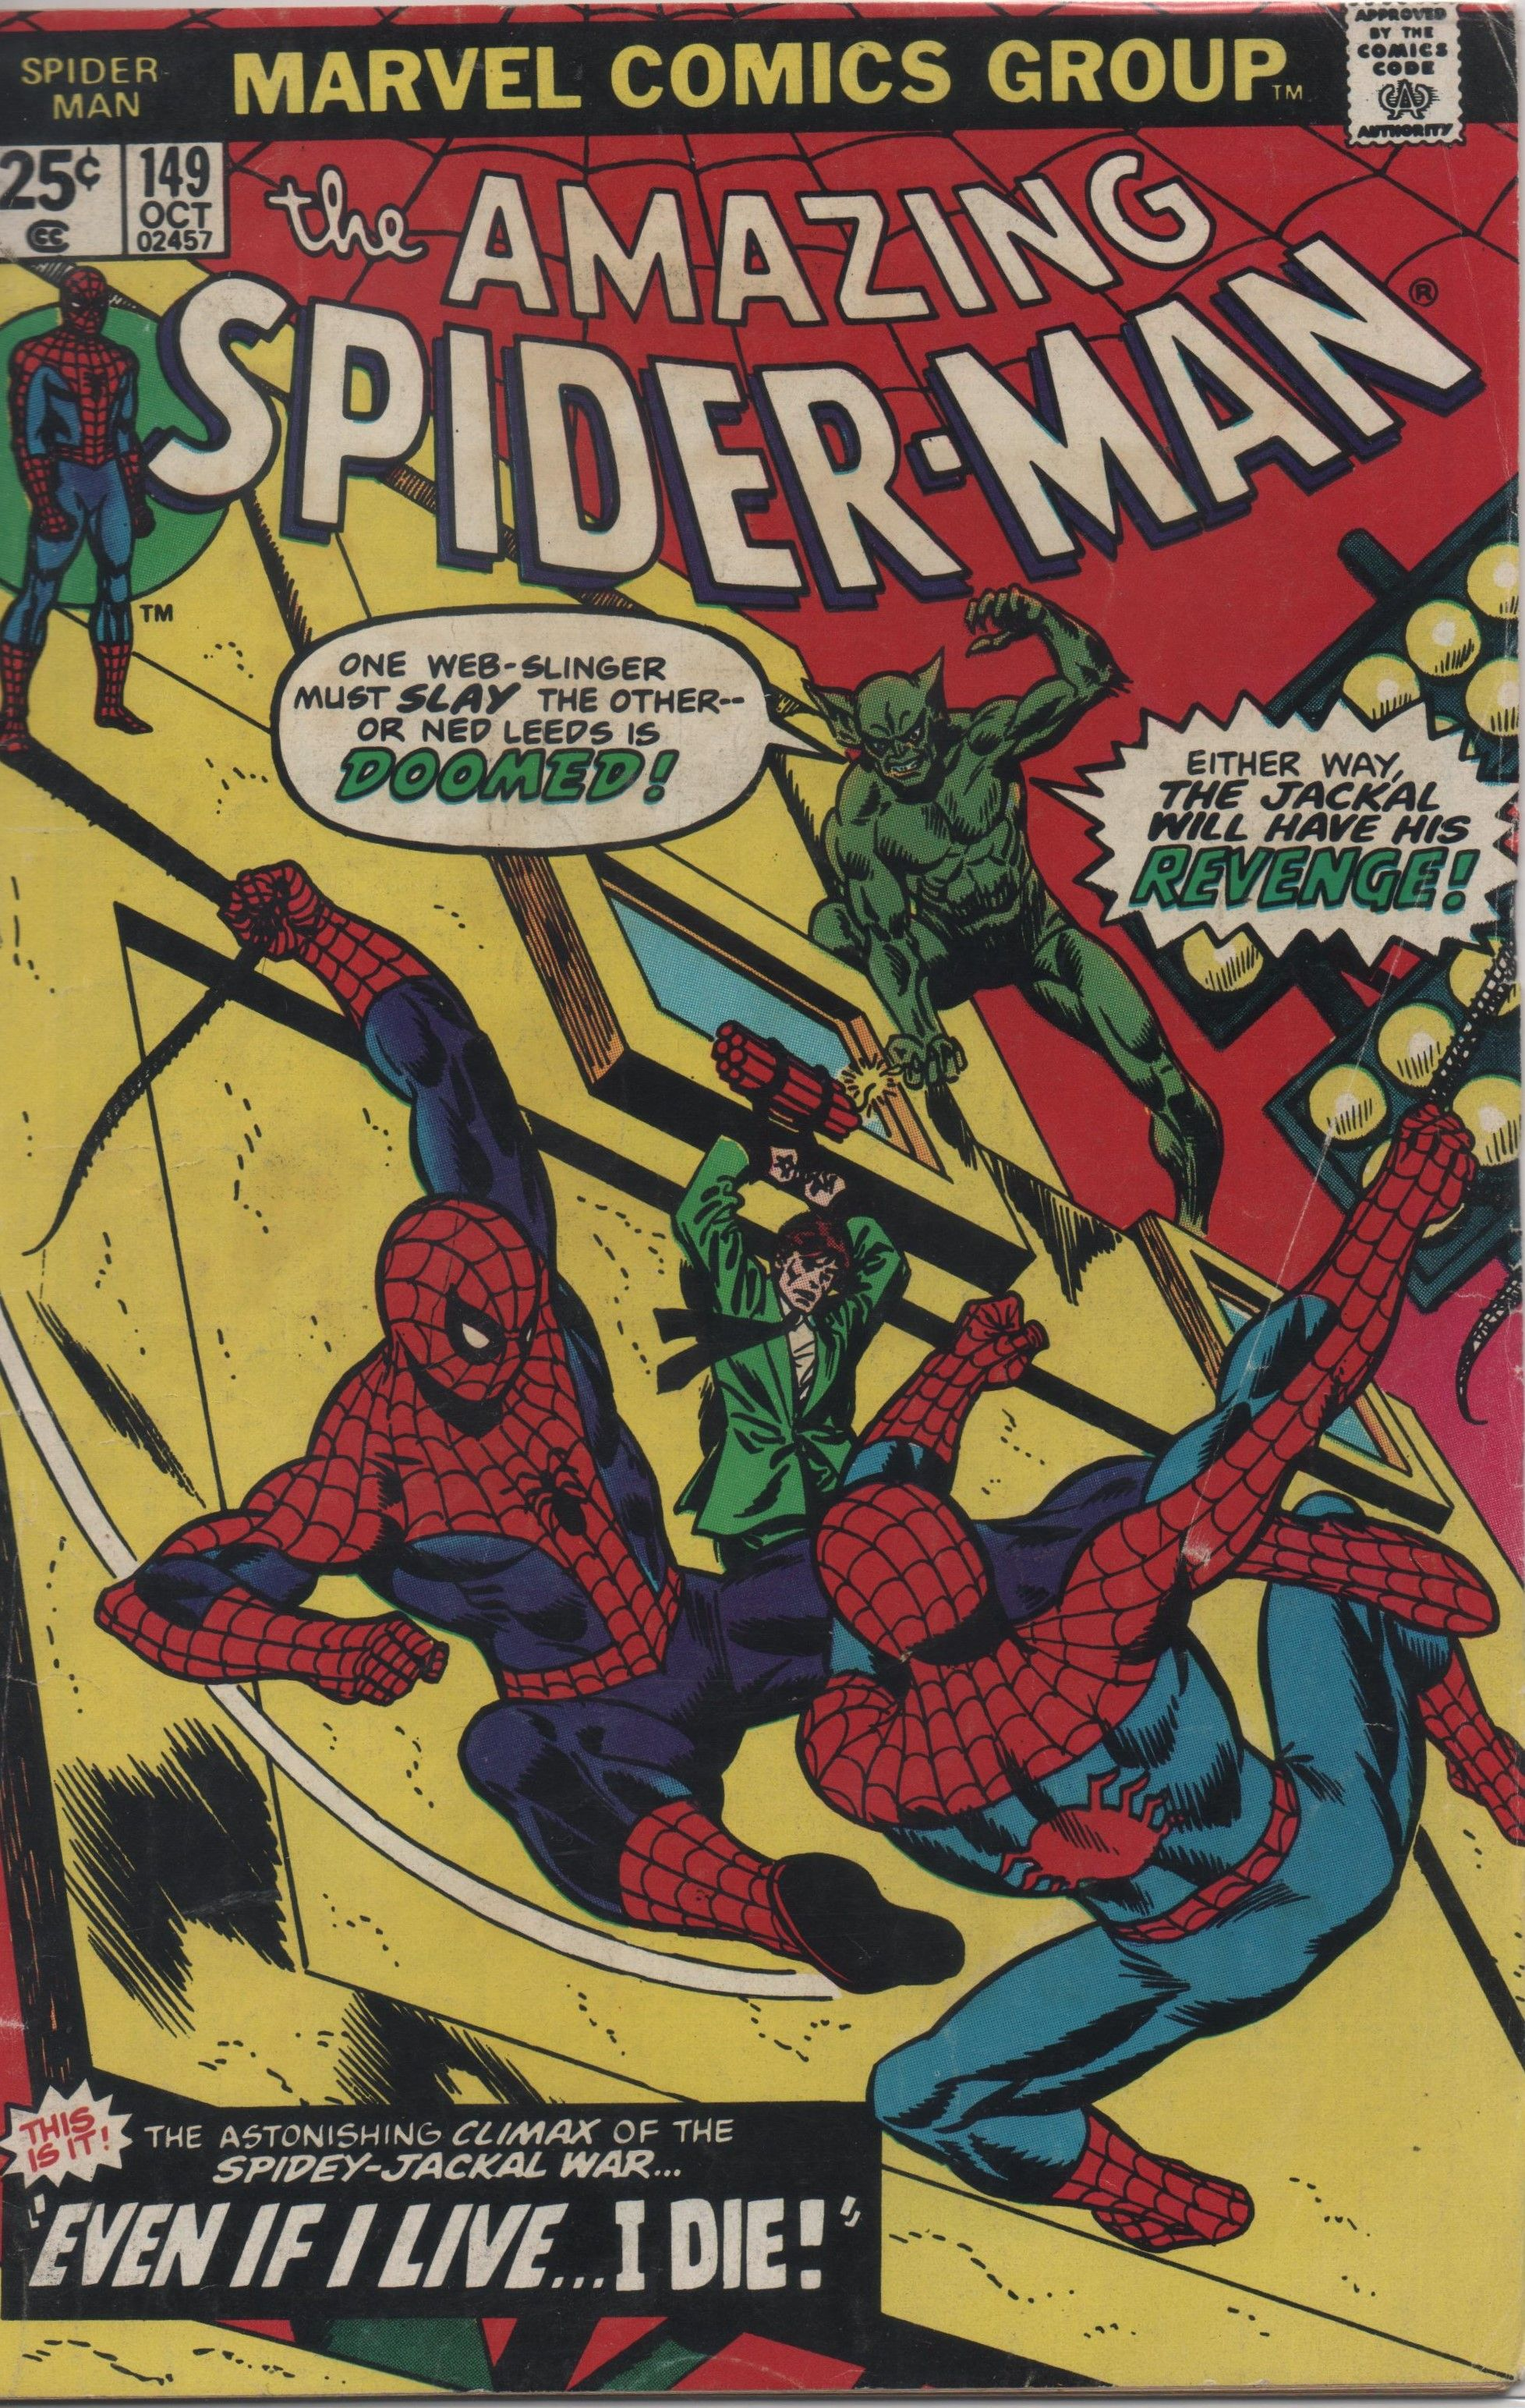 Marvel Comics 1970s by Rich Clabaugh Amazing spider